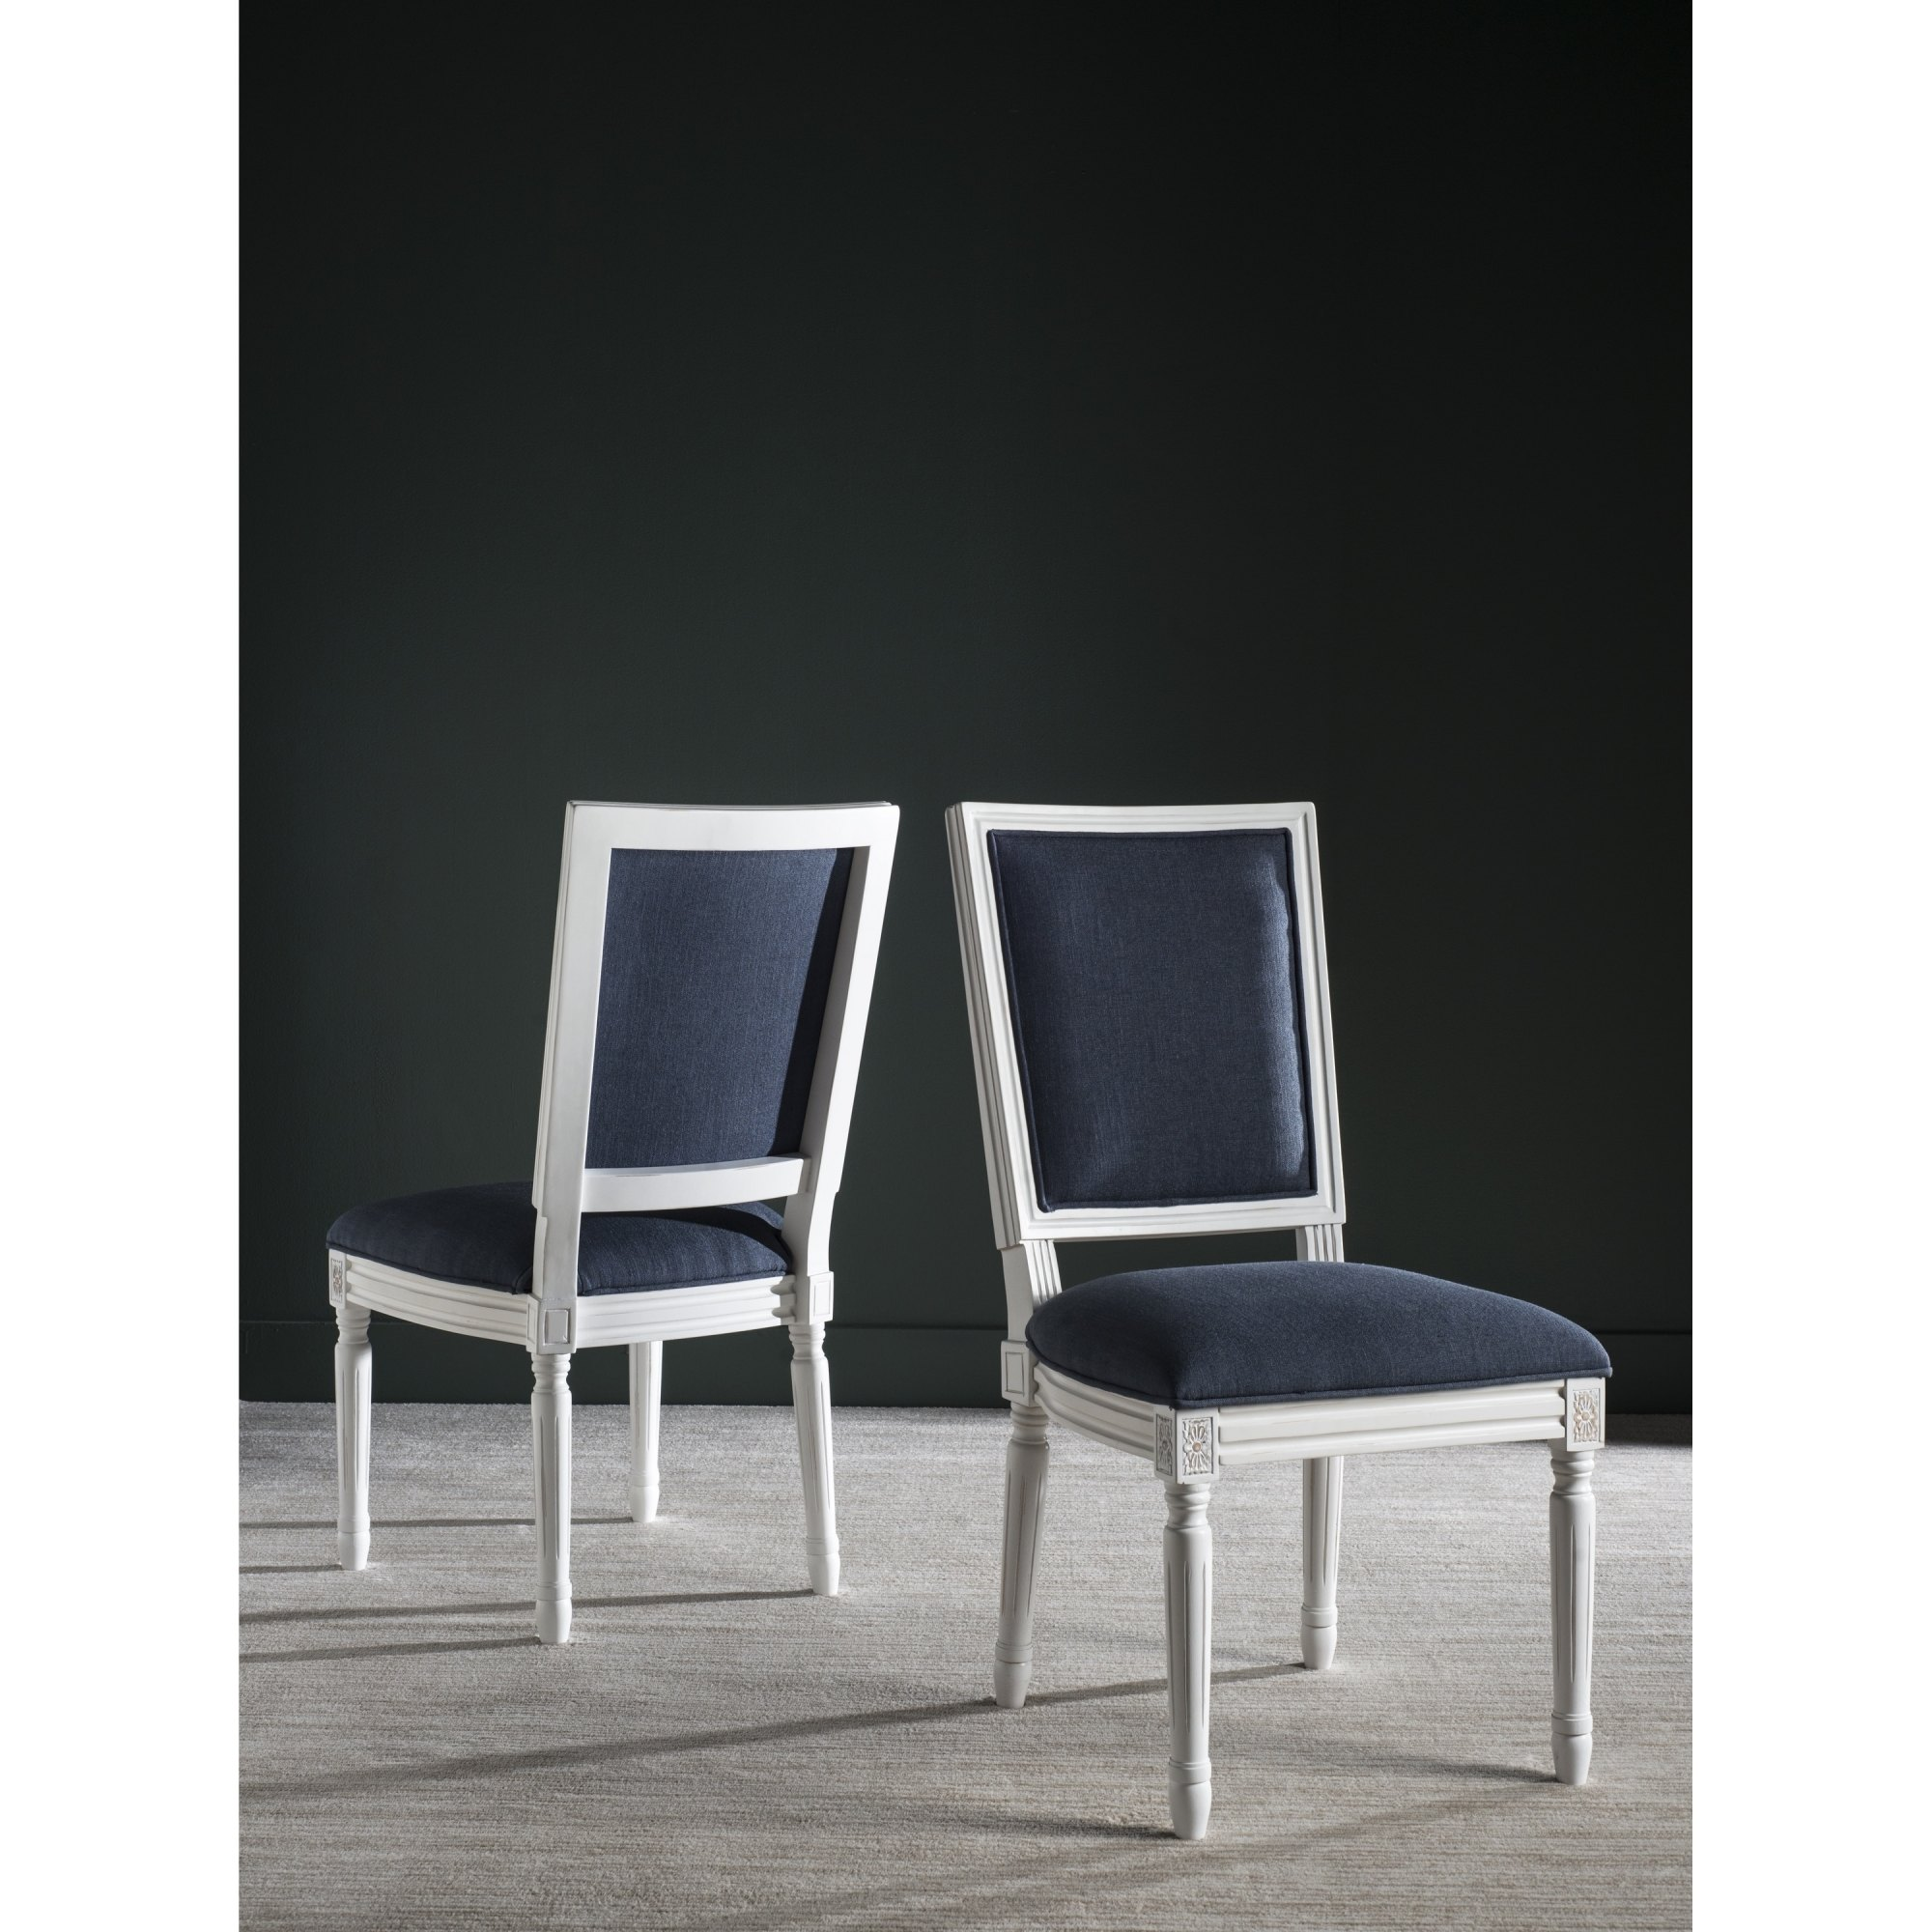 hight resolution of safavieh dining old world buchanan navy rectangular dining chairs set of 2